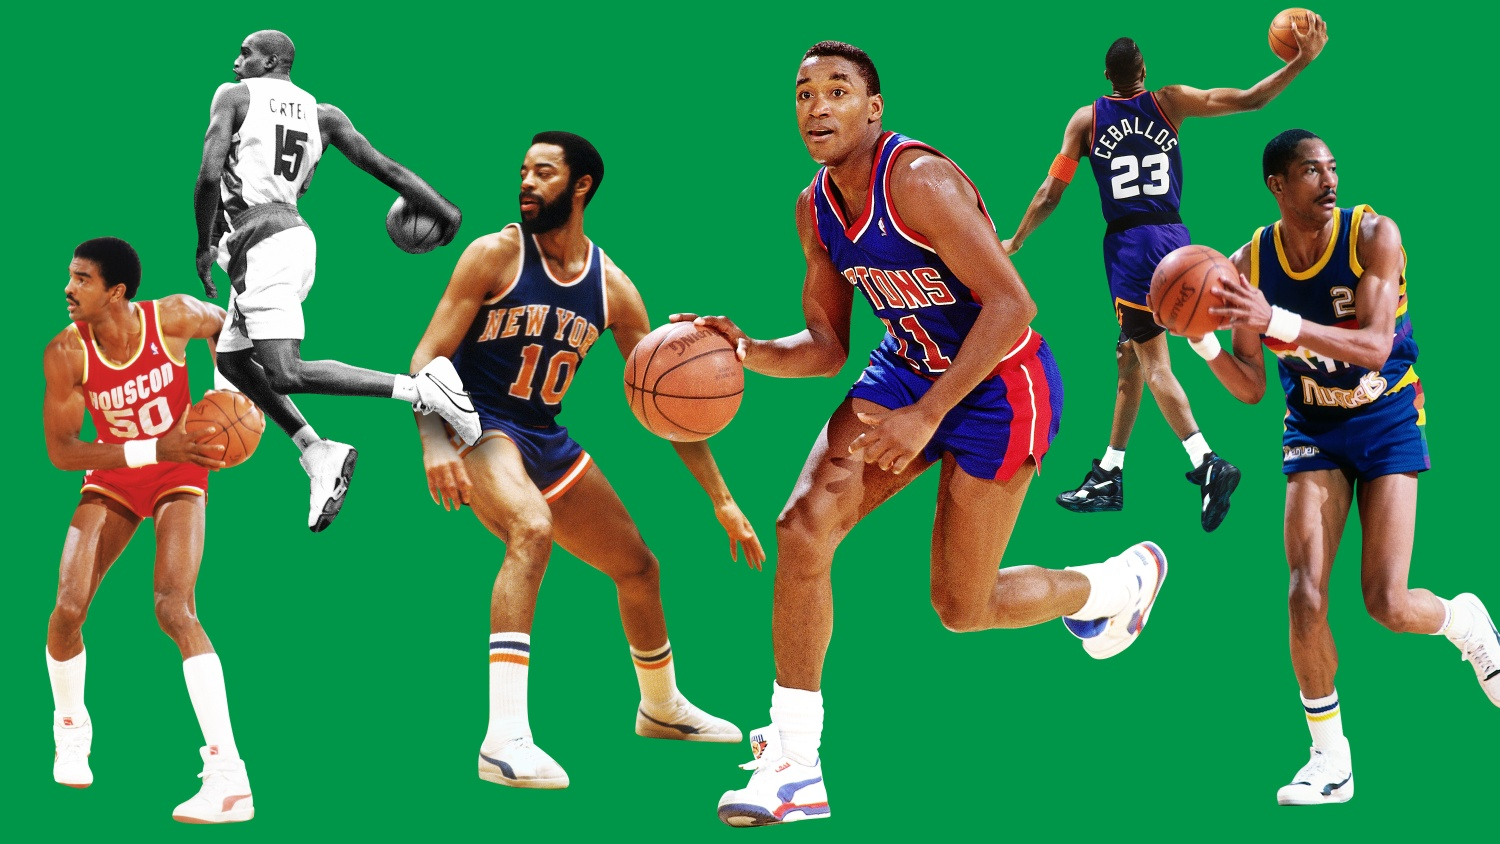 a67b87b3a44 The forgotten history of Puma basketball